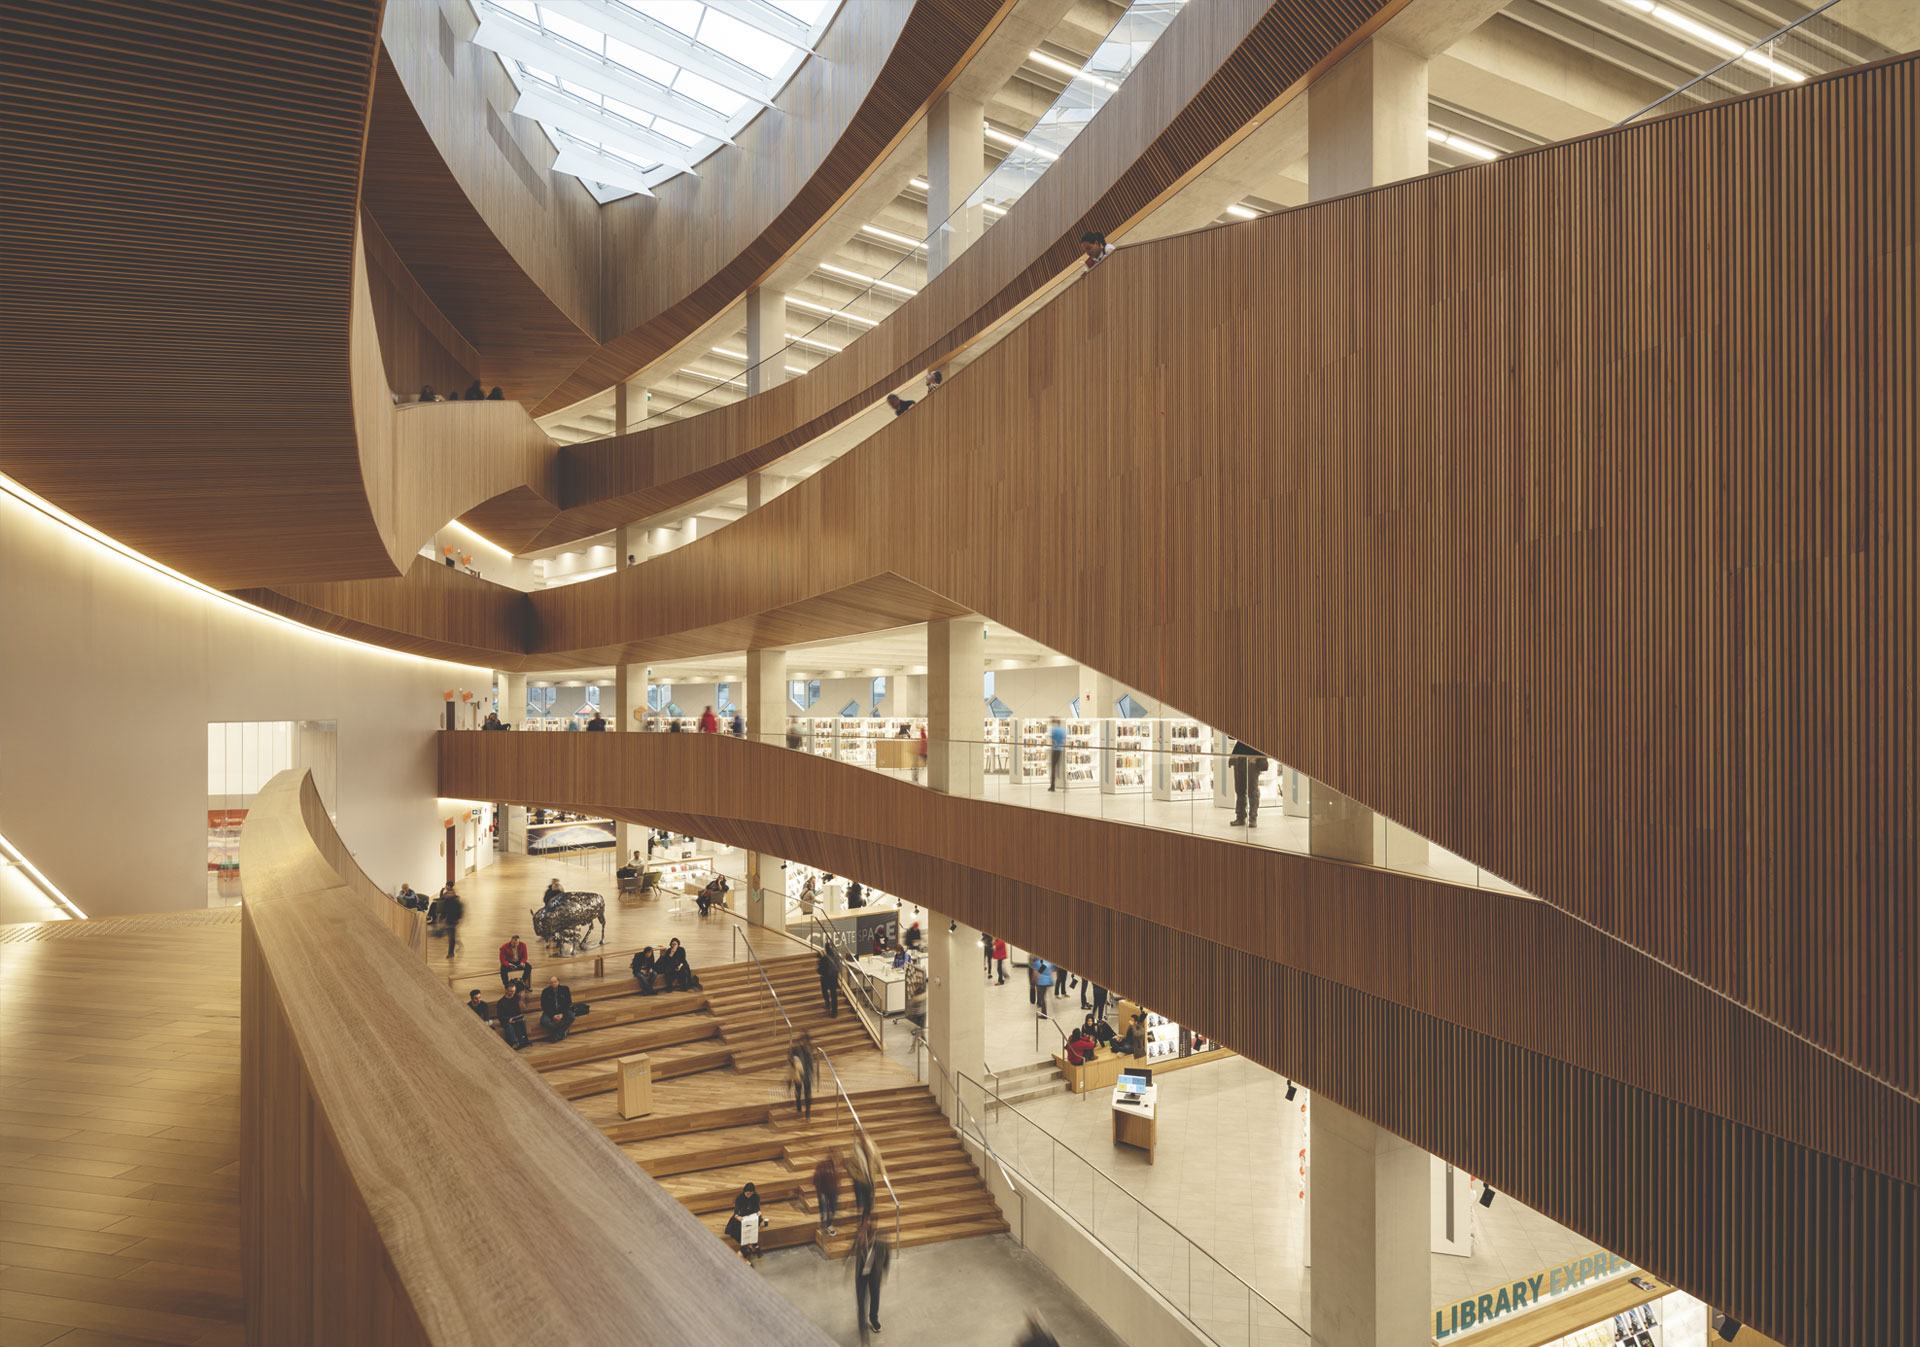 Calgary's New Central Library (photo: Michael Grimm)